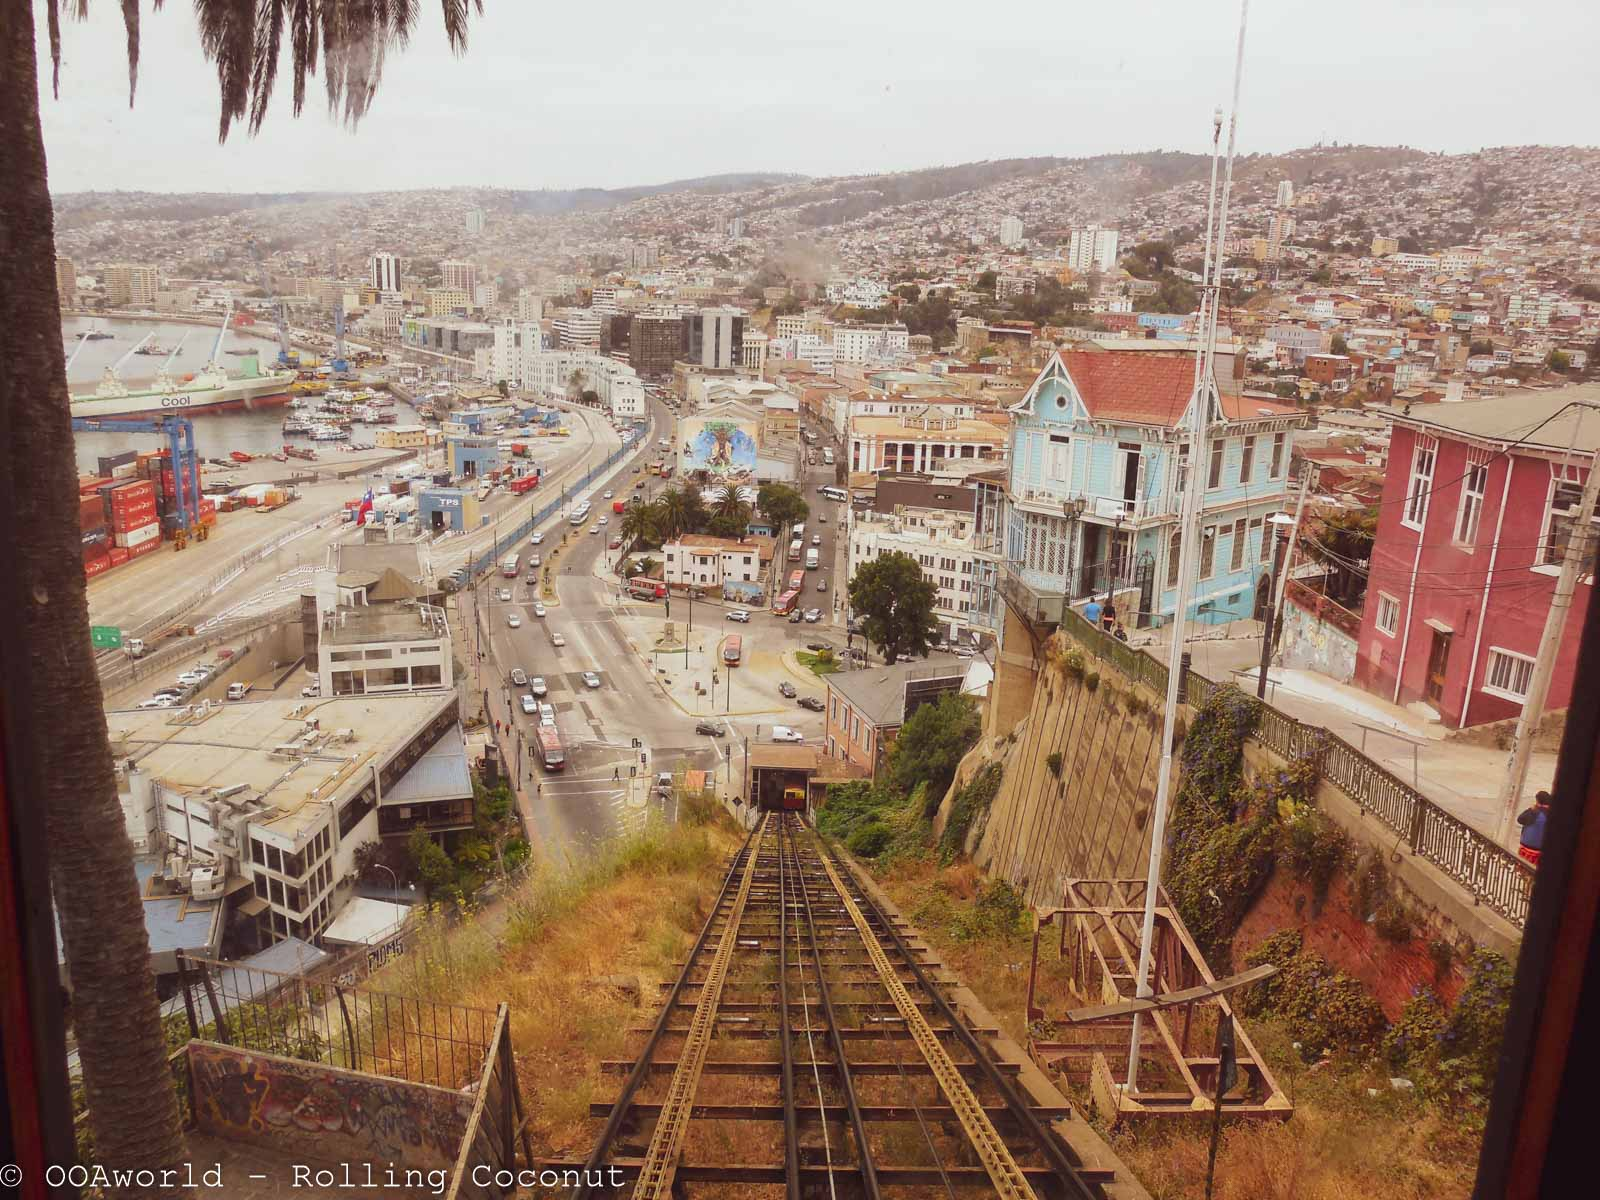 View of Ascensores and the city of Valparaiso, Chile - OOAworld Rolling Coconut